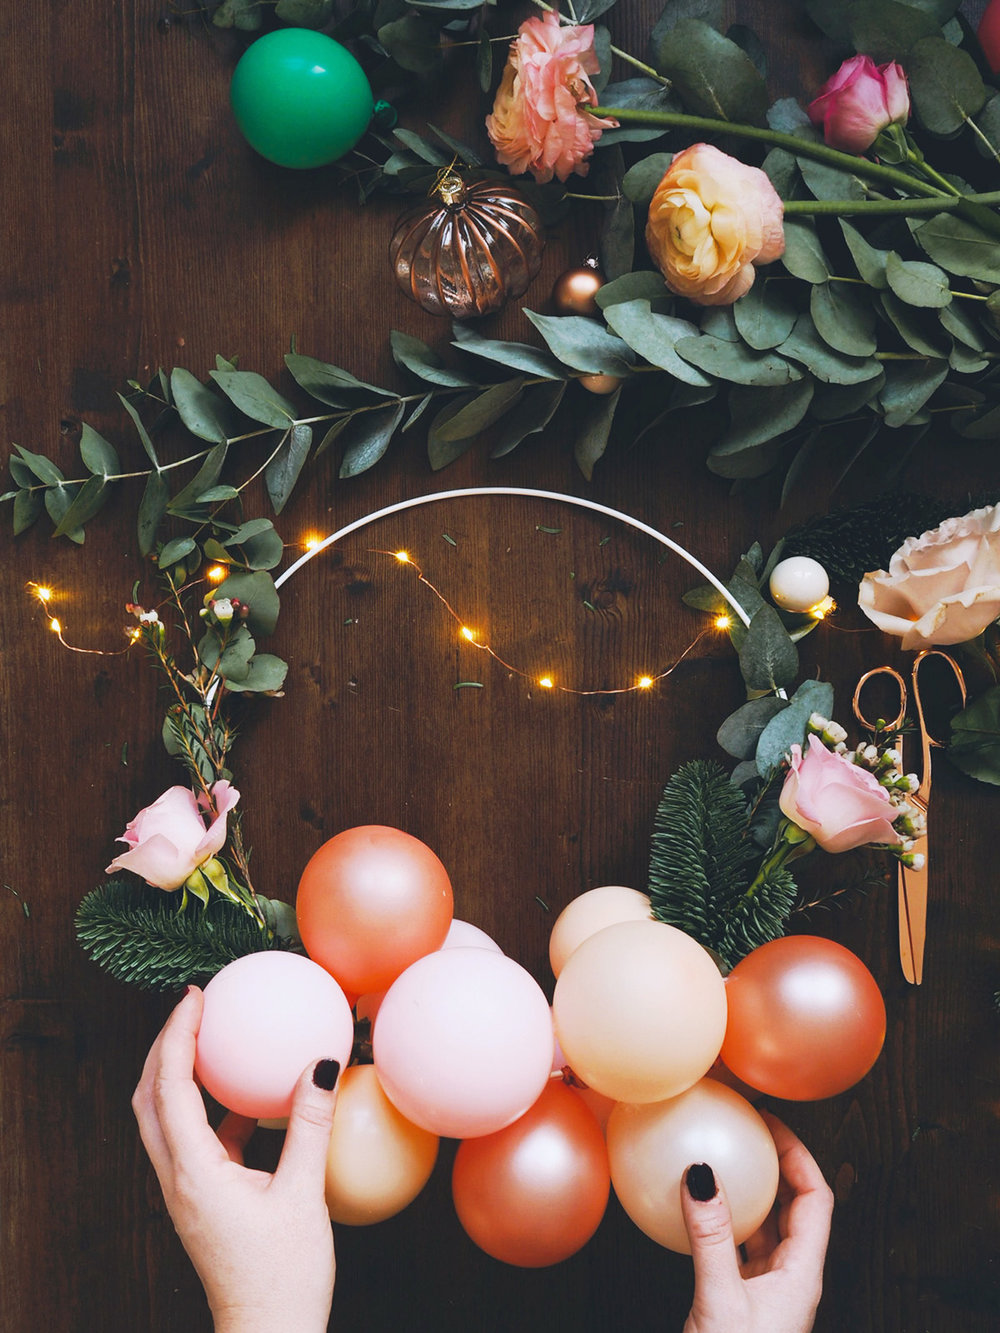 blog-balloon-wreath-13.jpg